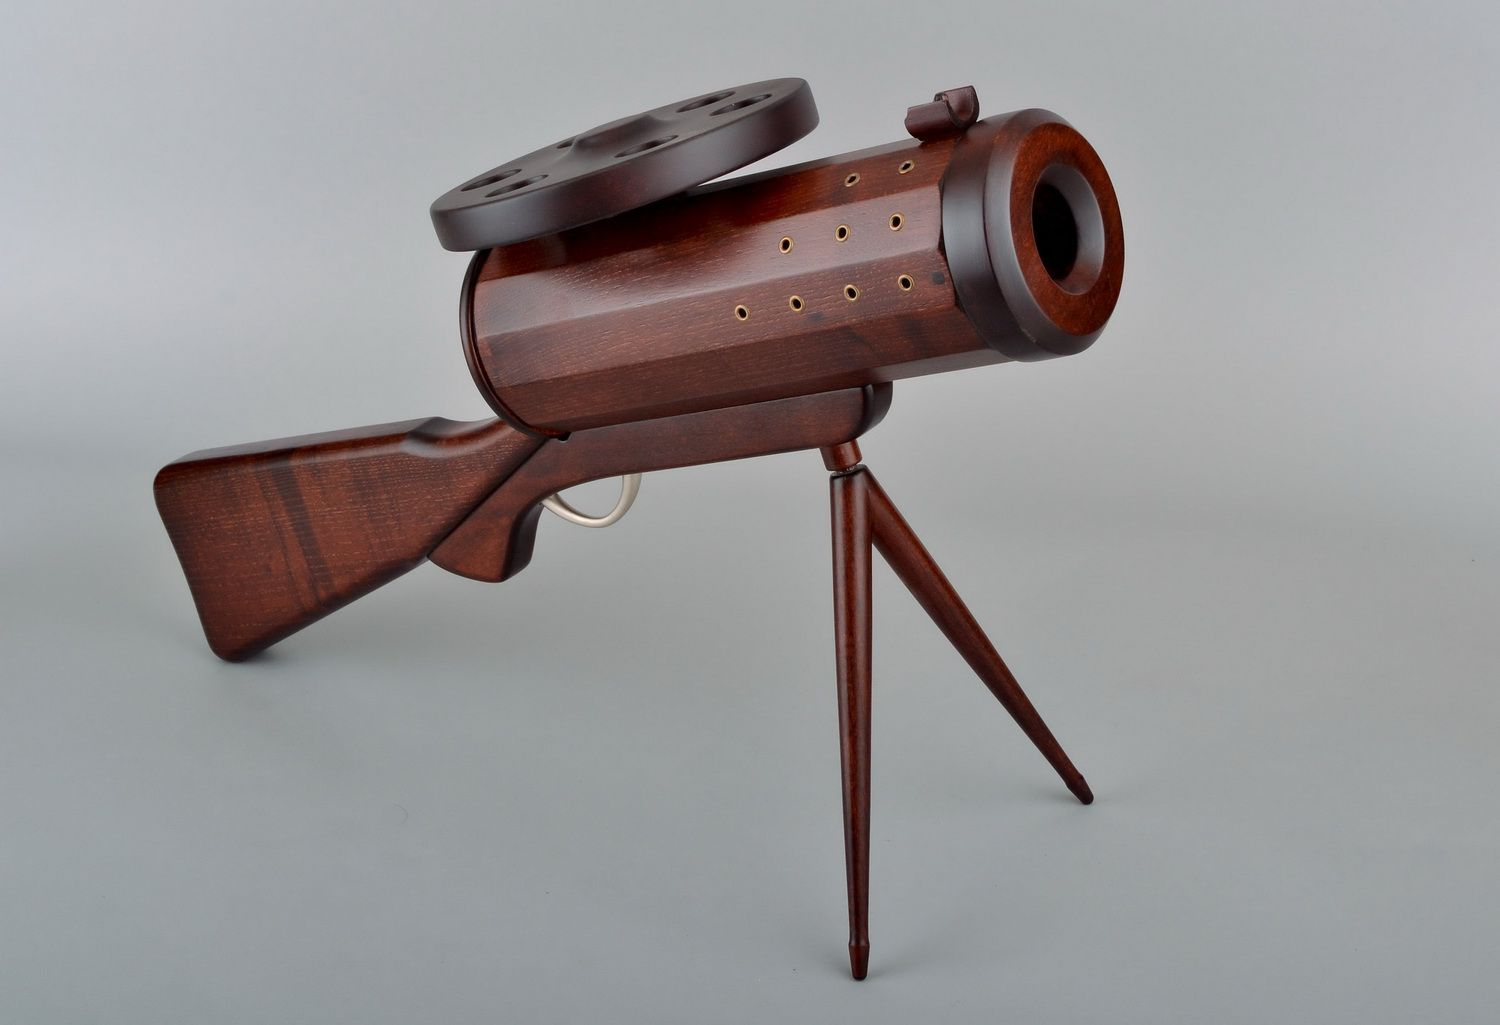 Wooden wine bottle stand in the form of a gun photo 2